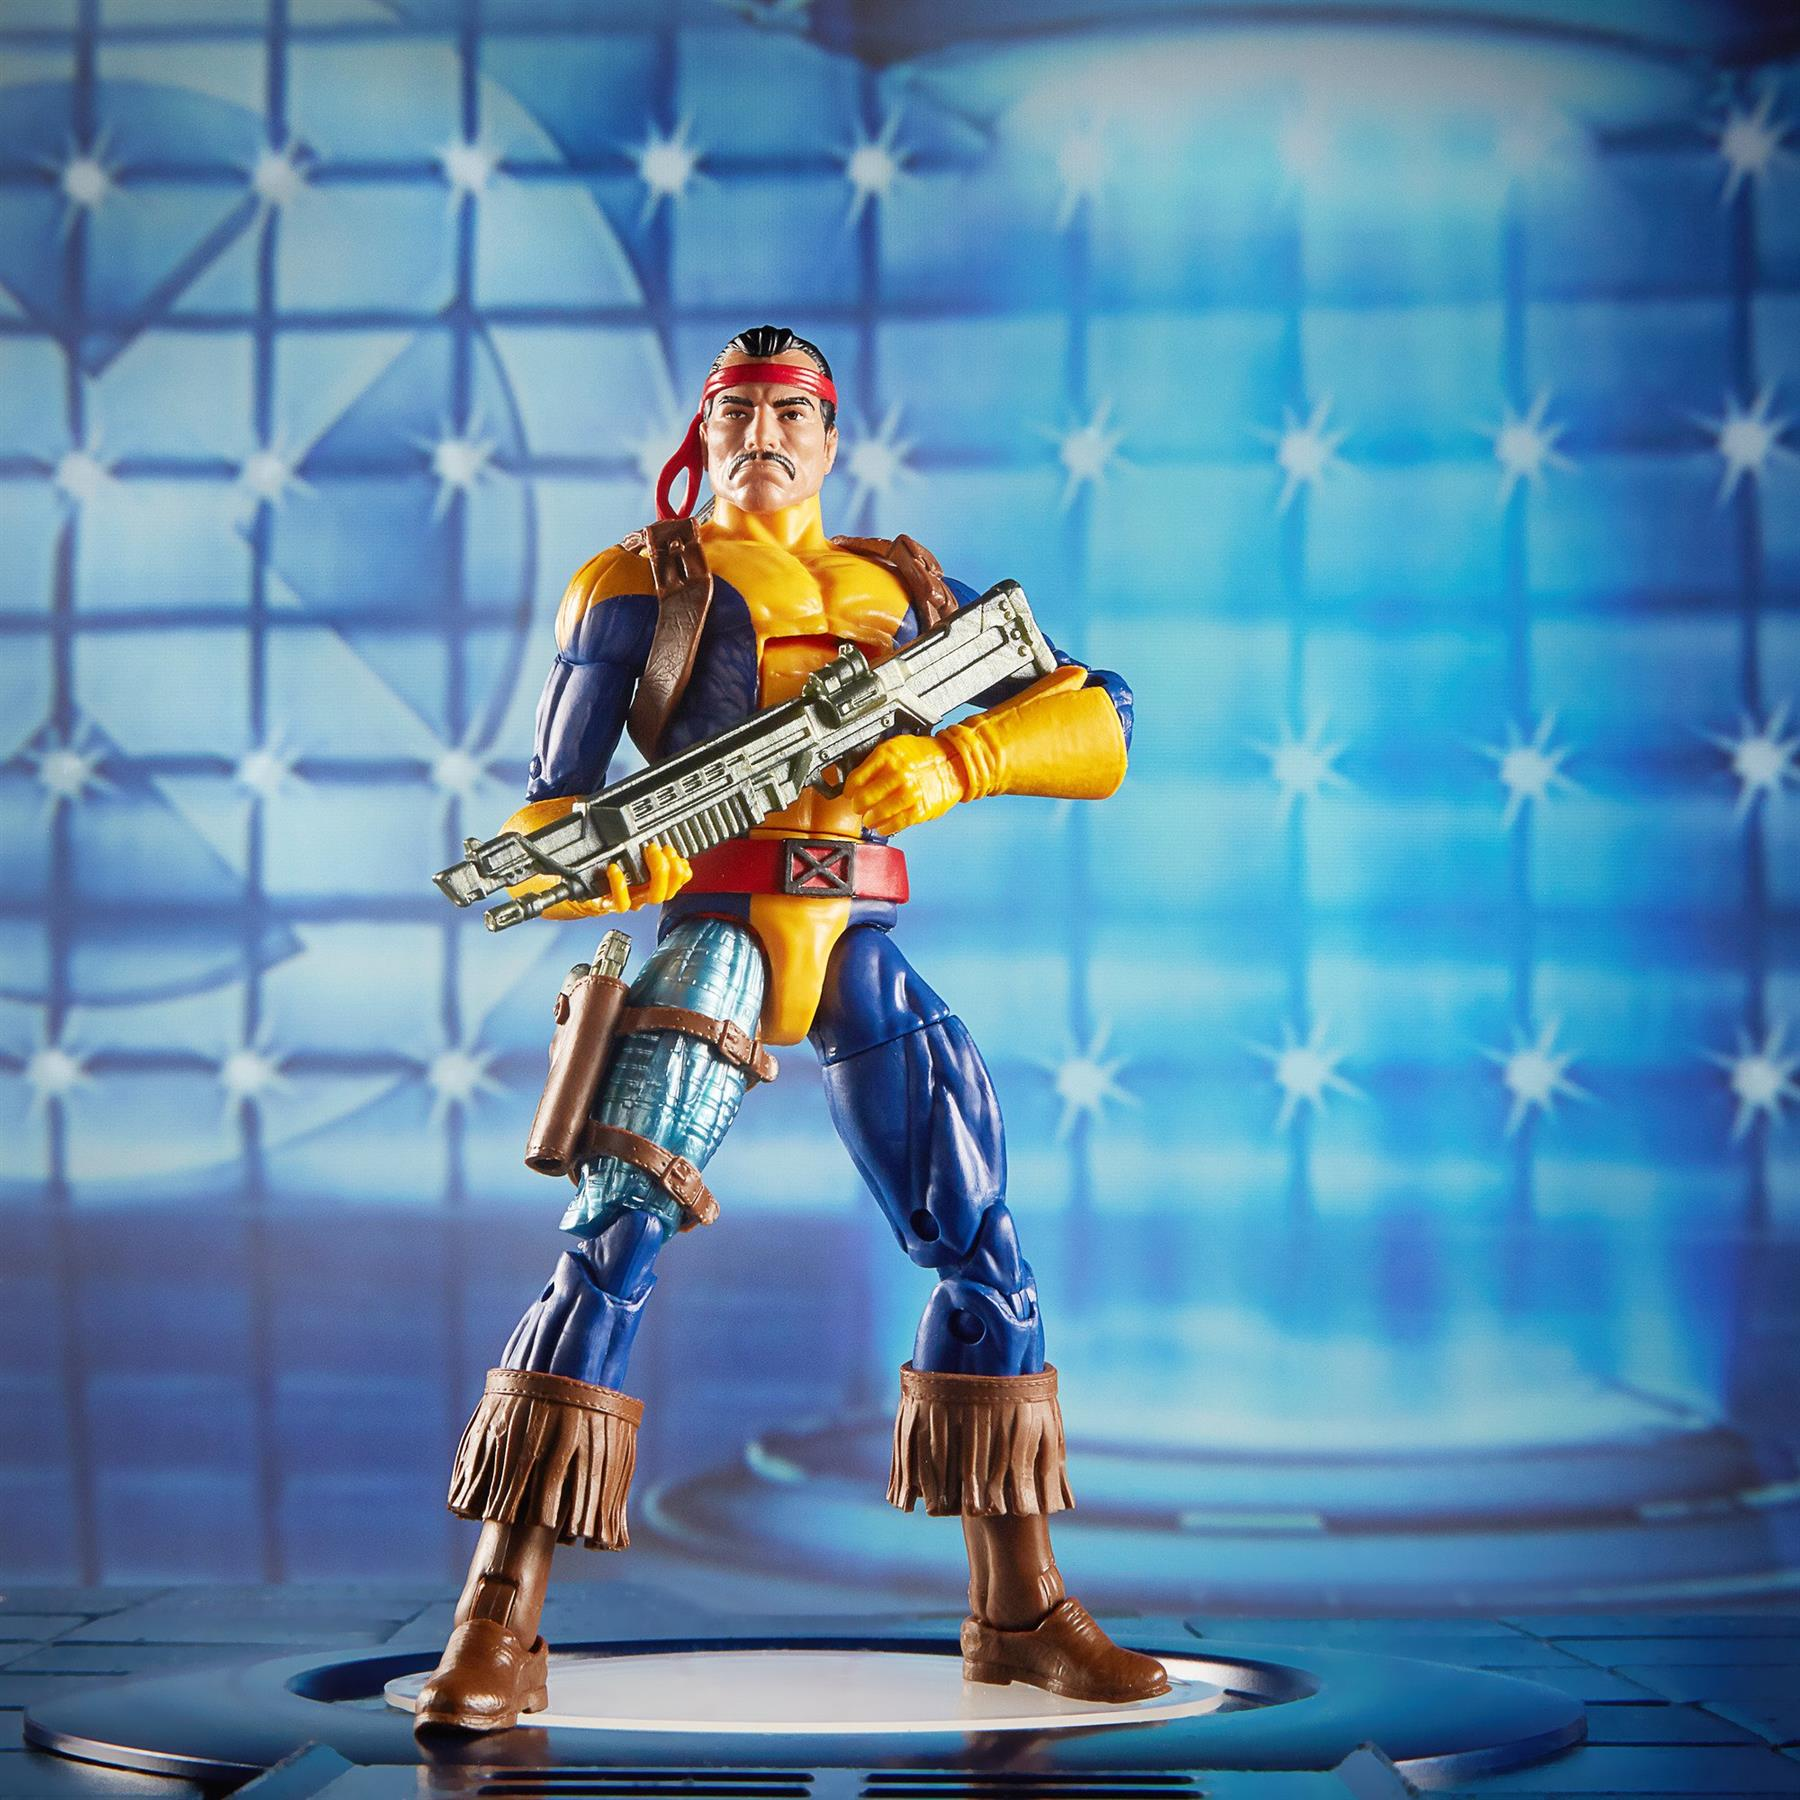 Hasbro-Marvel-Legends-X-Men-6-034-Action-Figure-Caliban-BAF thumbnail 17